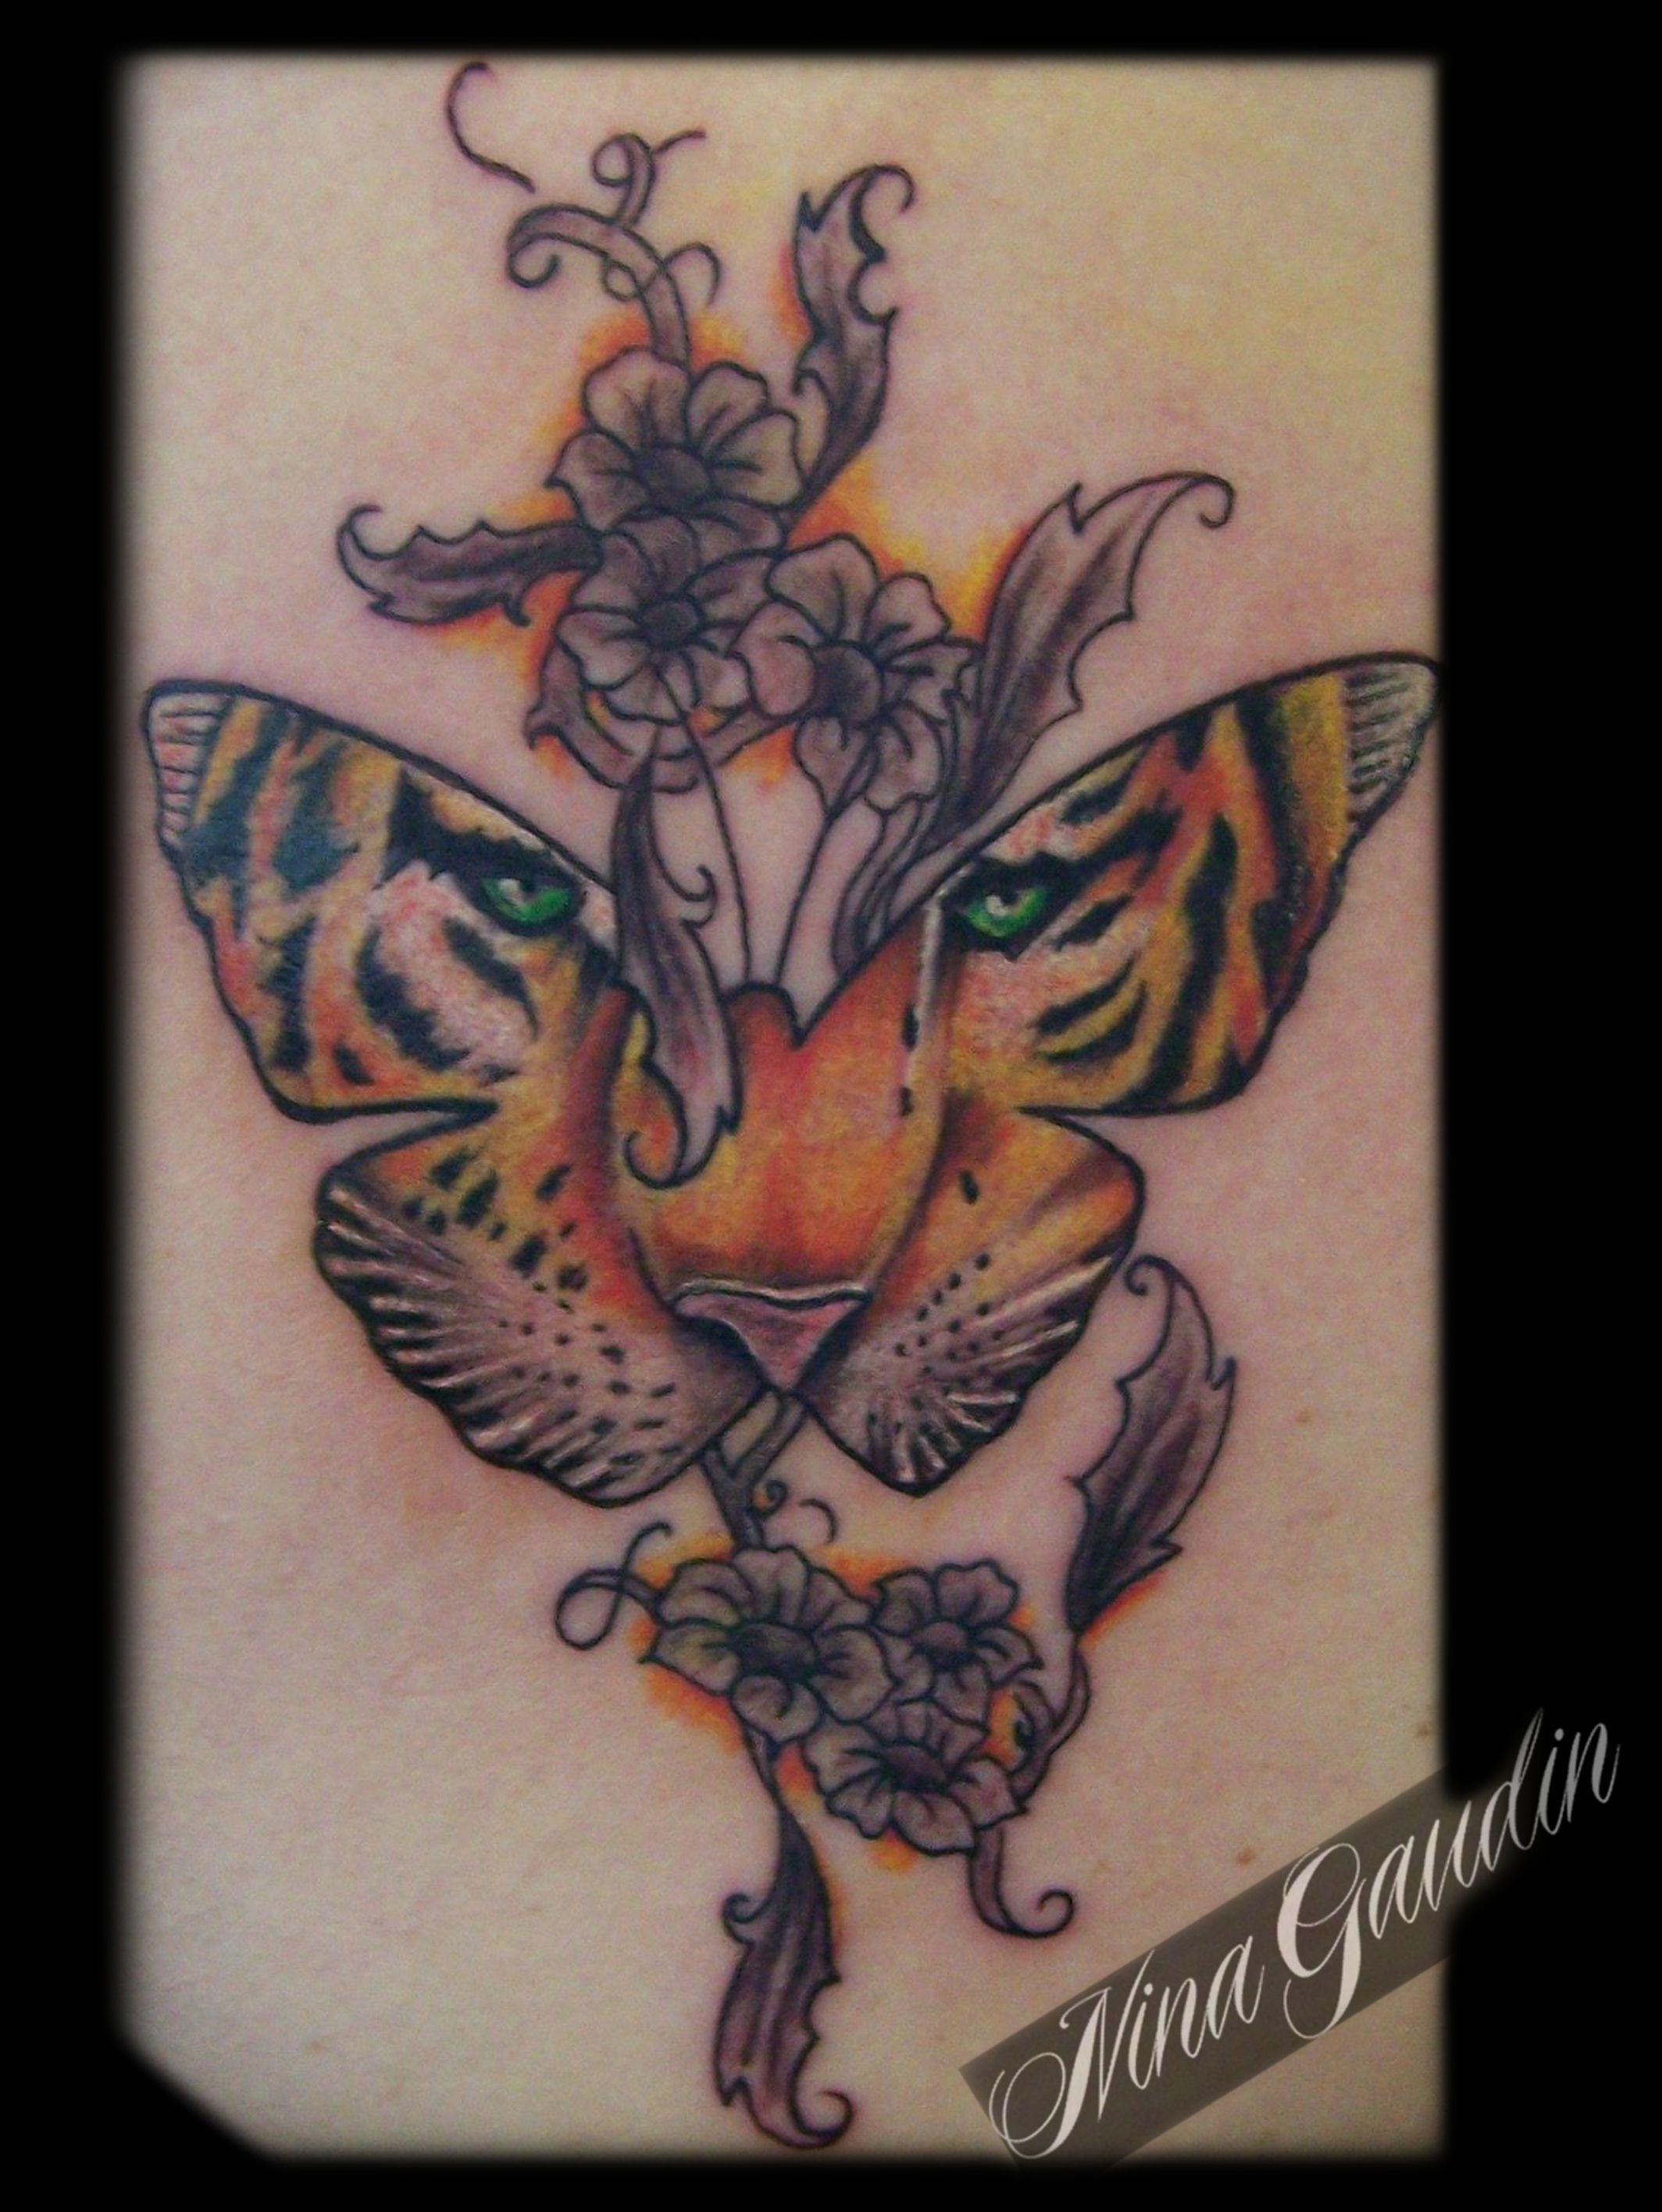 ba8a8a1d2 Tiger butterfly flowers color - Tattoo by Nina Gaudin of 12th Avenue Tattoo  in Nampa, ID